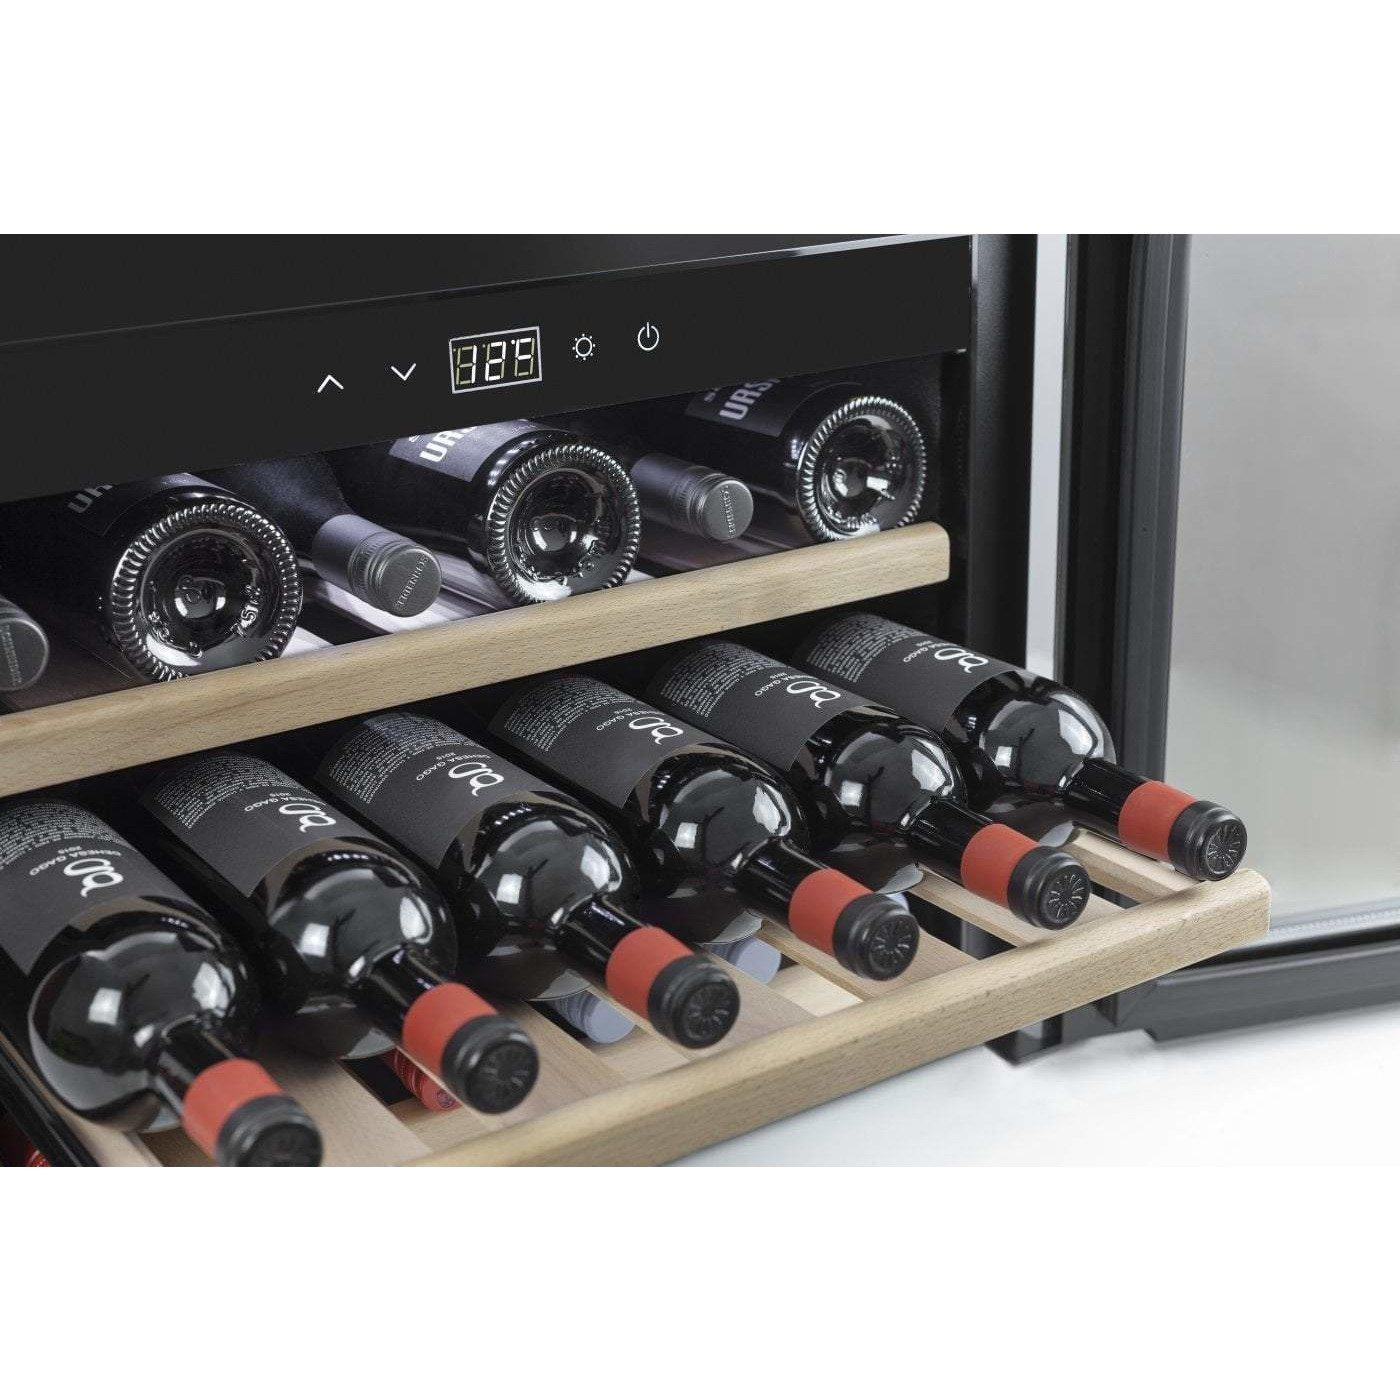 CASO WineSafe 18 EB Inox 629- Integrated Single Zone Wine Cooler / Wine Fridge - 18 bottles - 590mm Wide - winestorageuk